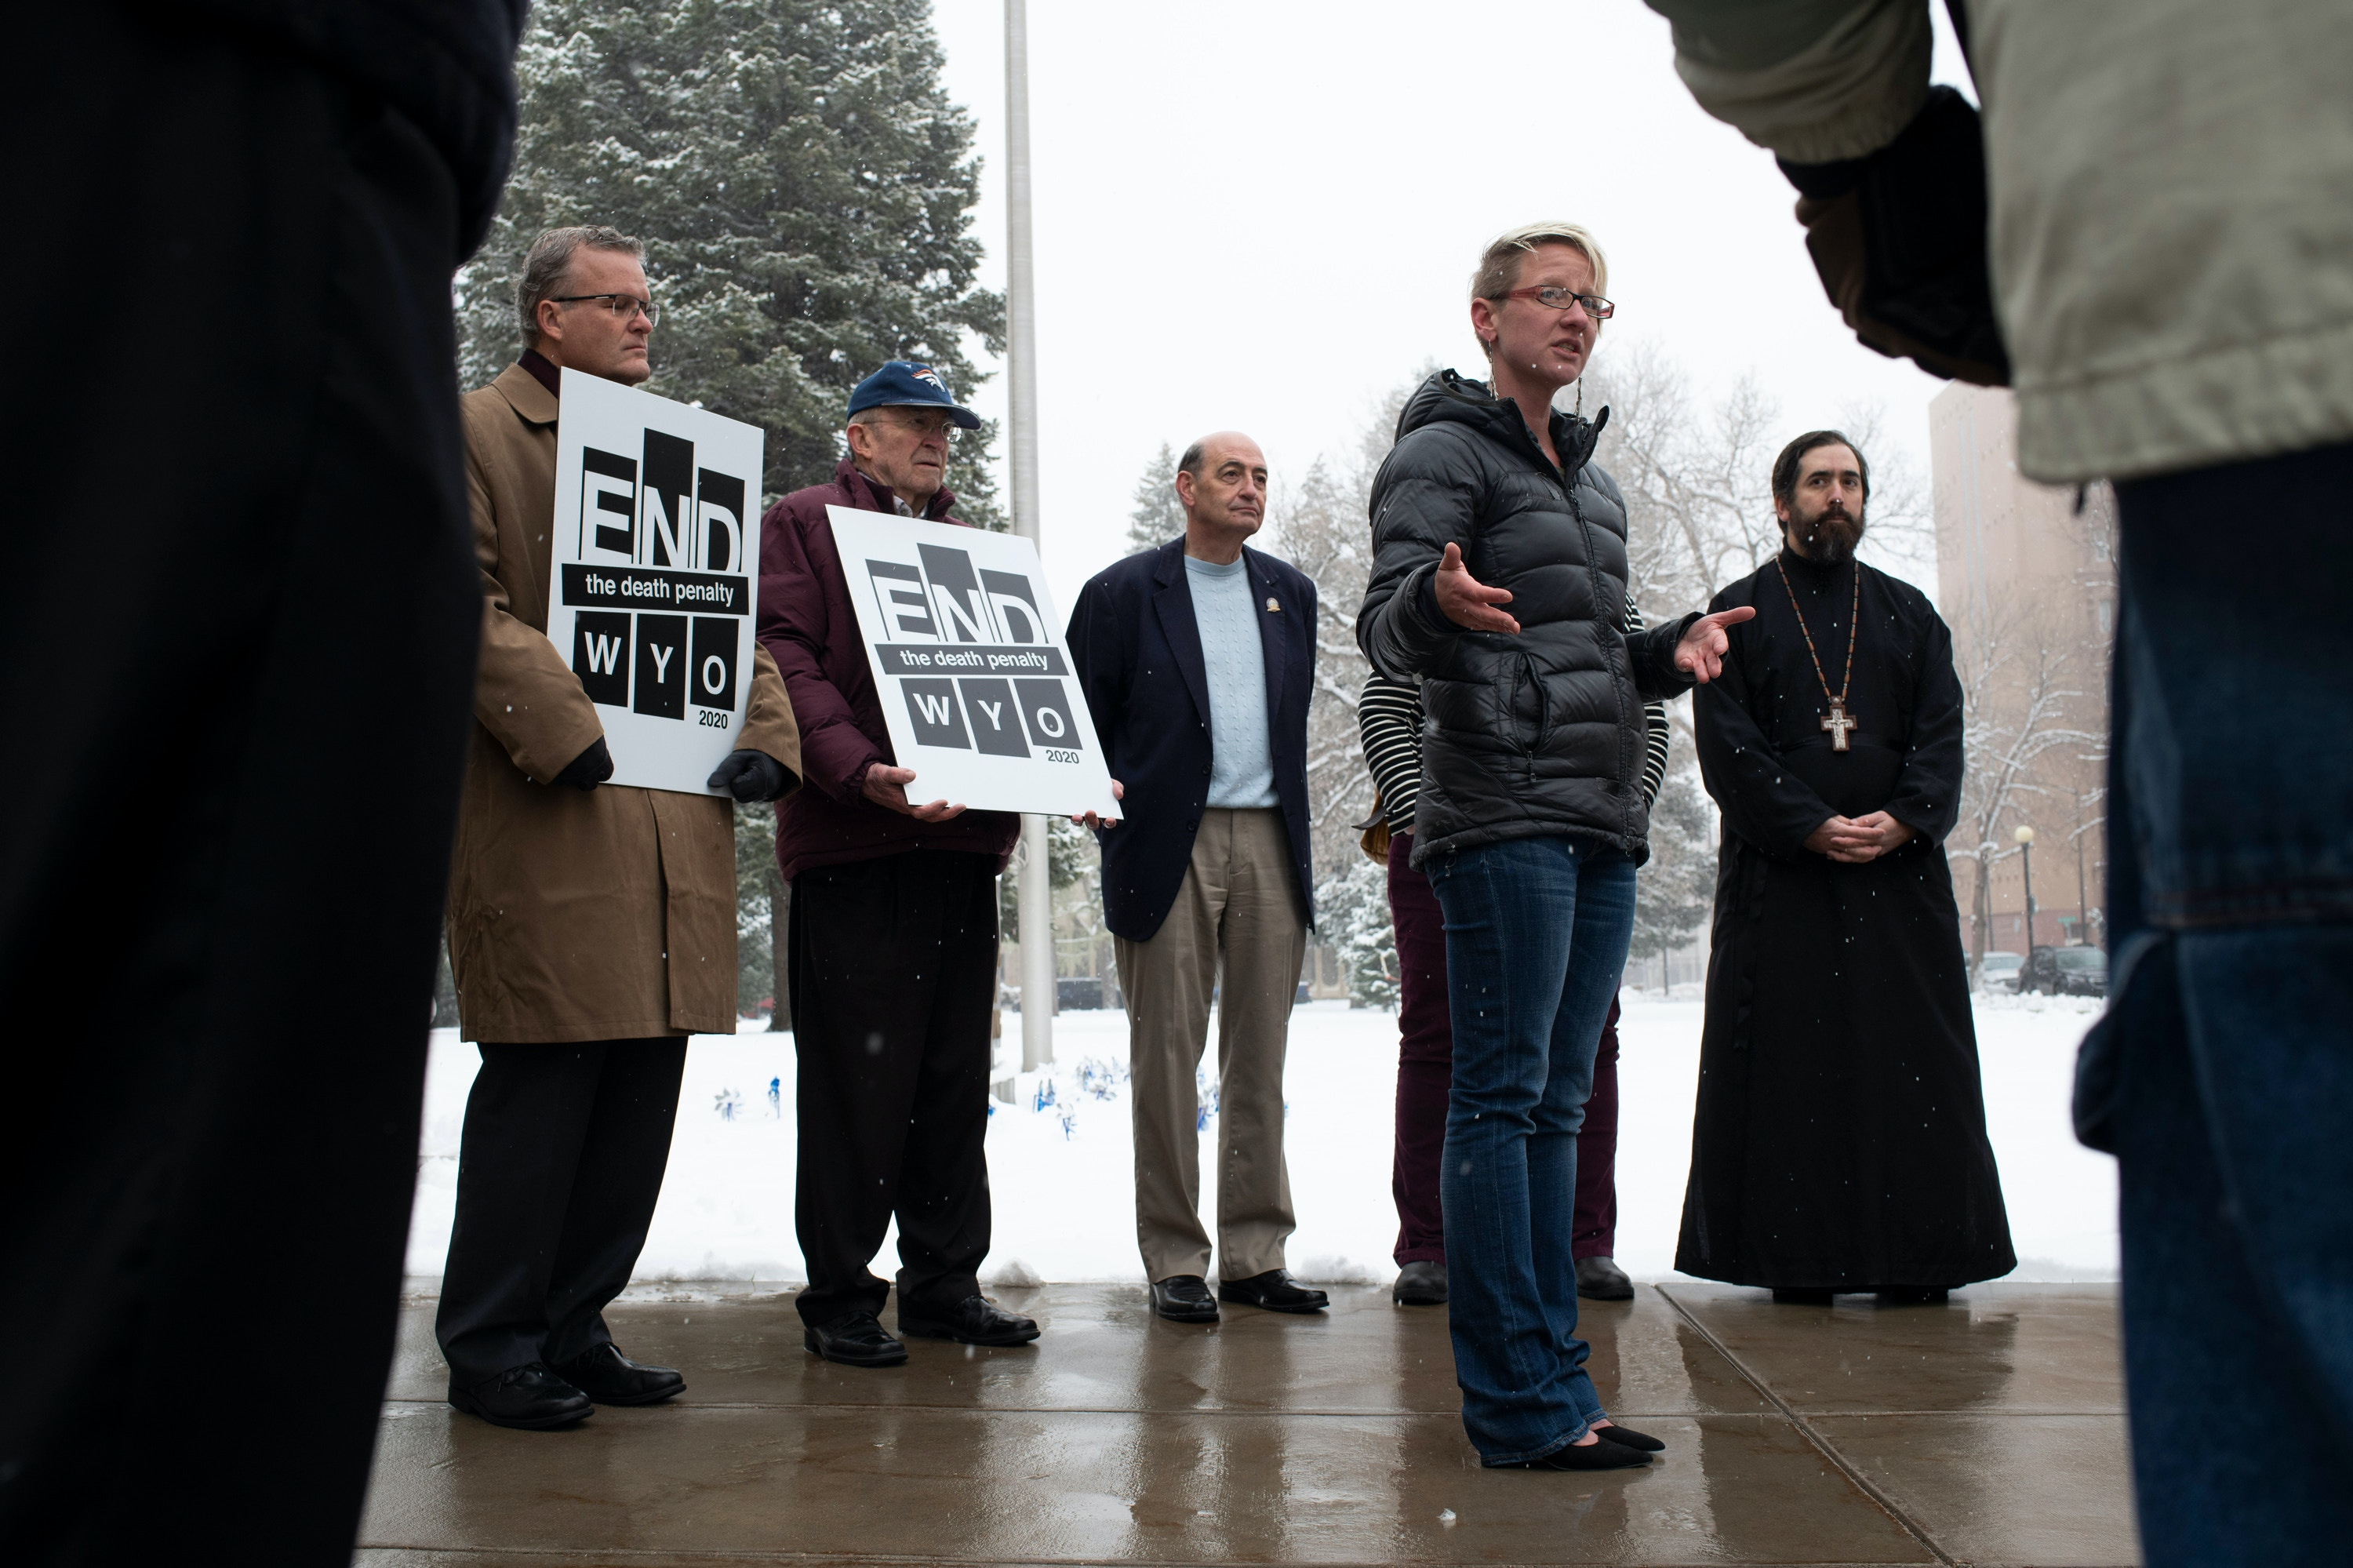 Wyoming-Death-Penalty_Woolf_05-1575220255 The Abolitionists: A Push to Repeal the Death Penalty Gains Ground Across the Western United States Featured Top Stories U.S. [your]NEWS